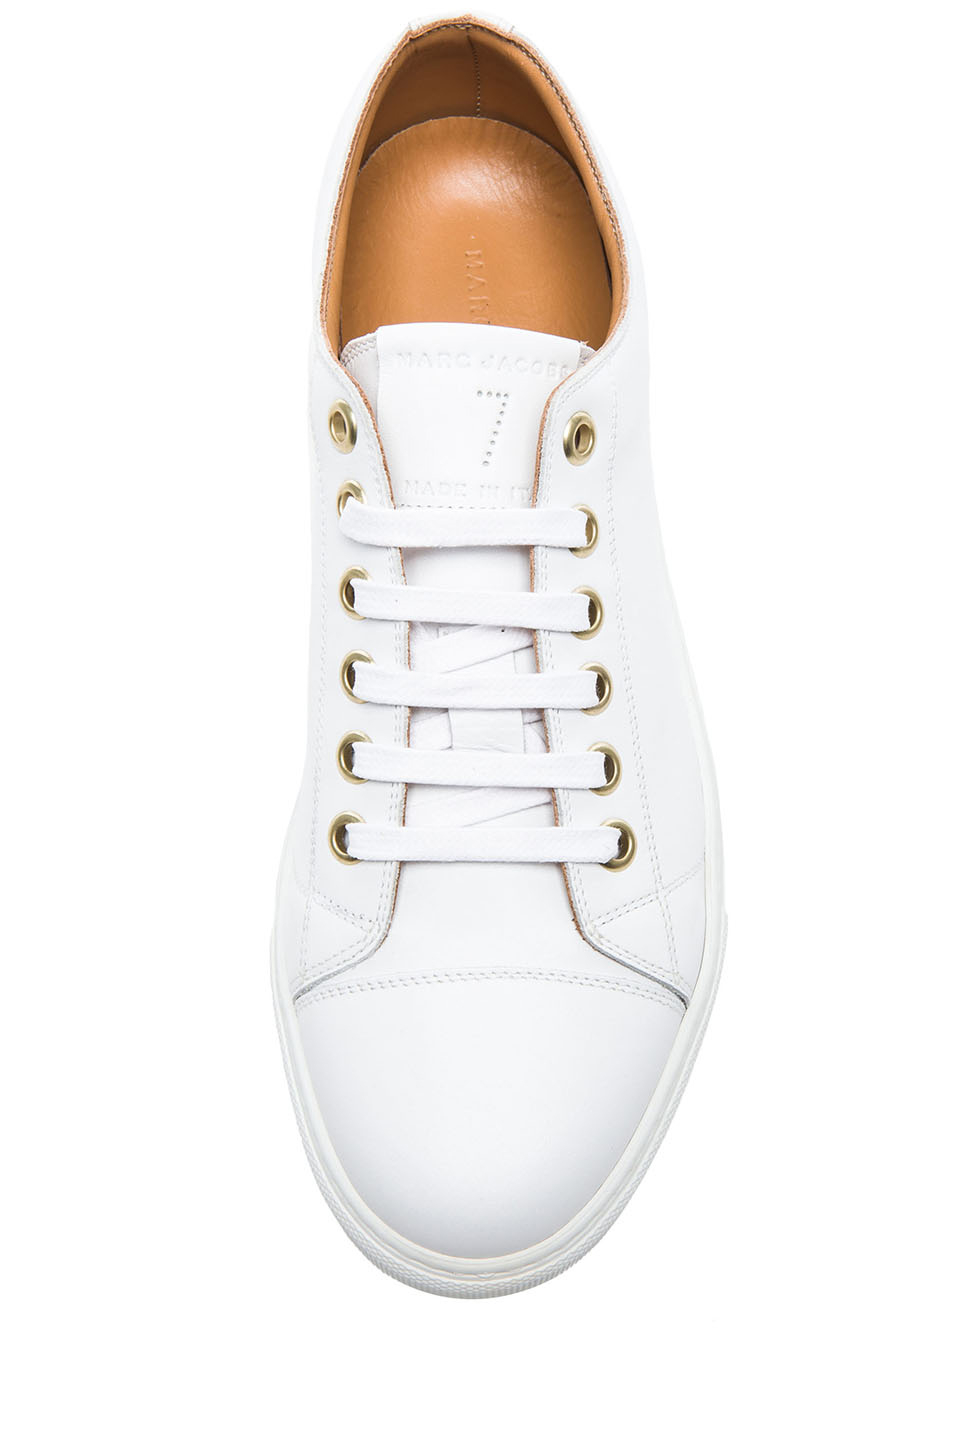 Marc Jacobs Shoes Canada